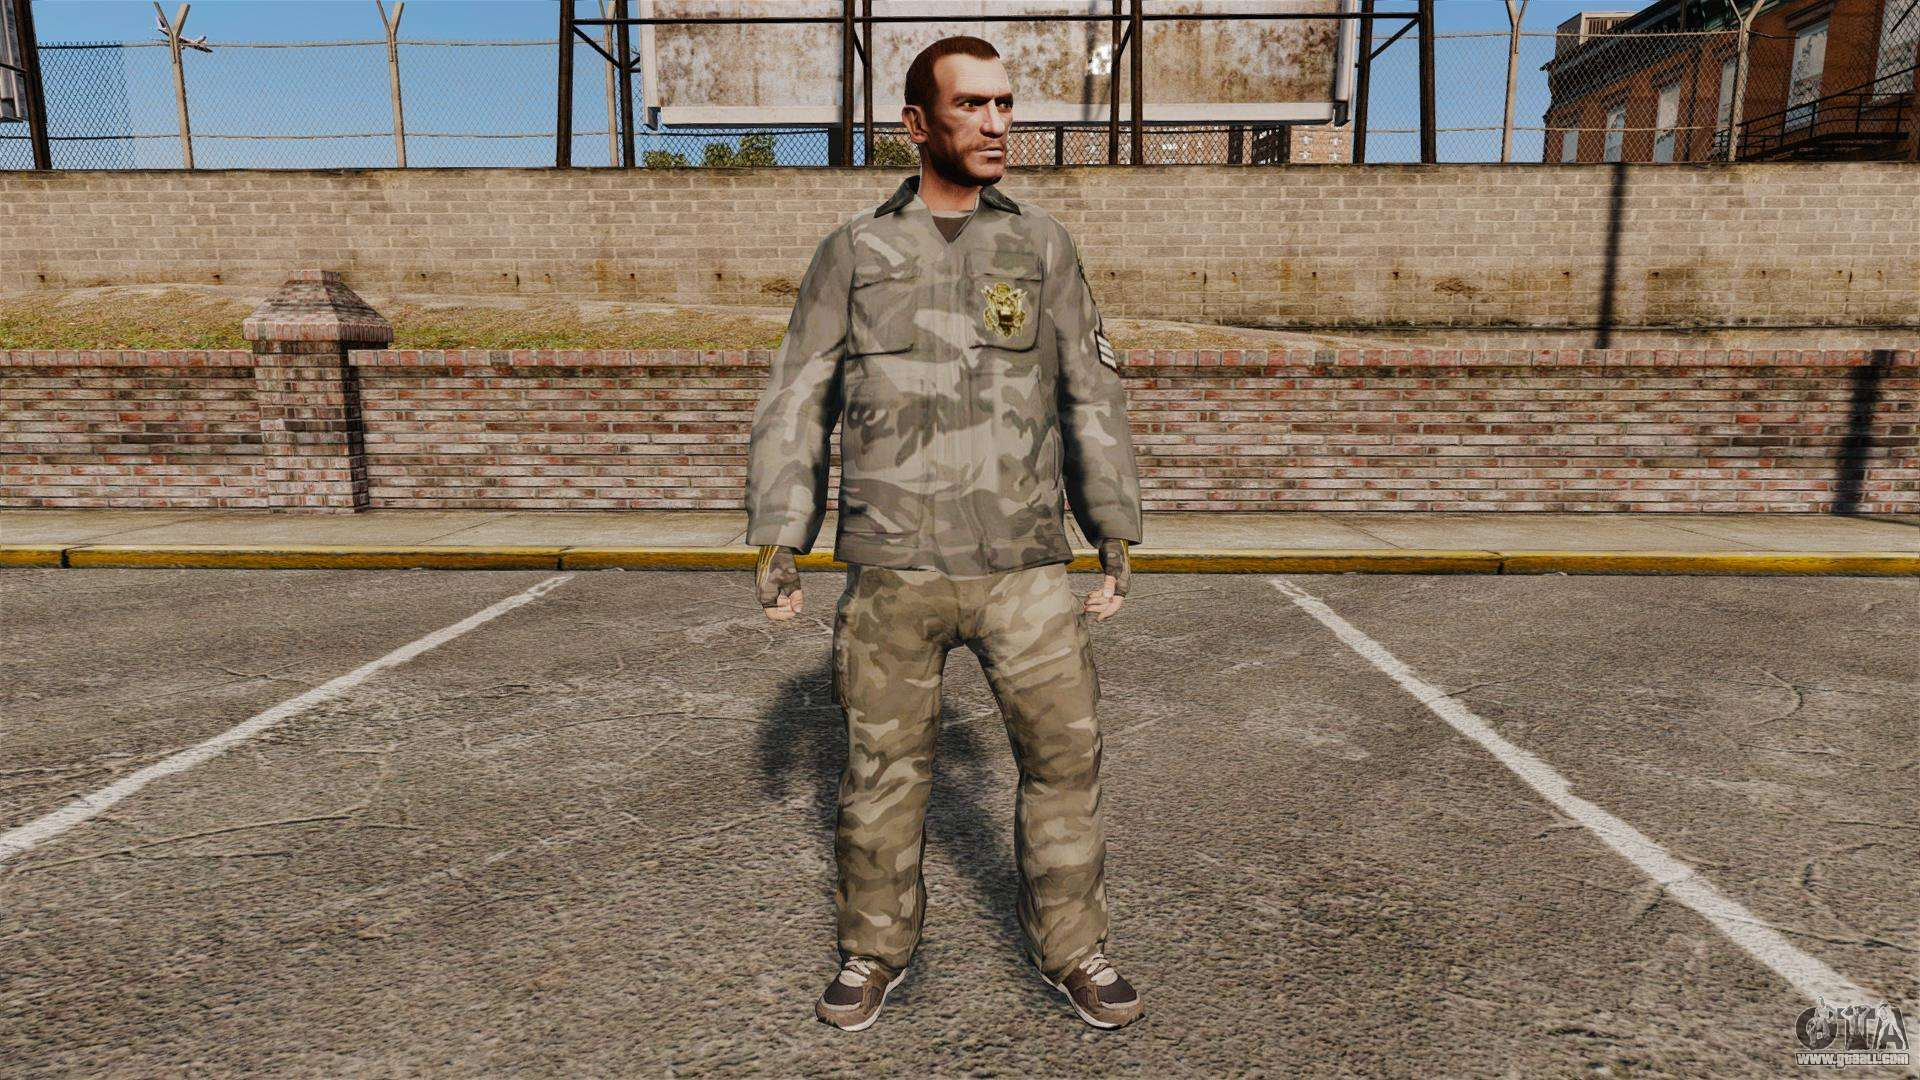 Gta iv clothing stores   Cheap clothing stores